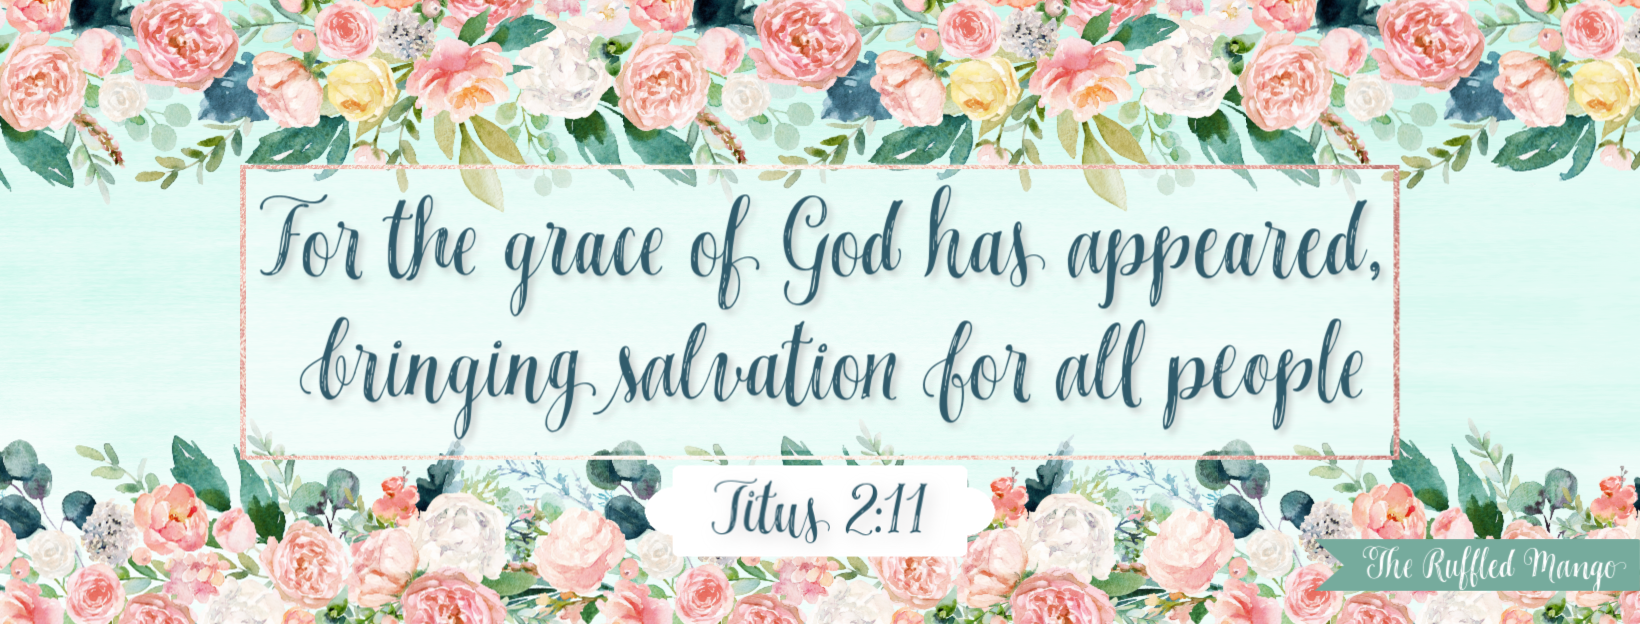 Amazing Grace Free Phone Wallpaper And Facebook Page Header The Ruffled Mango